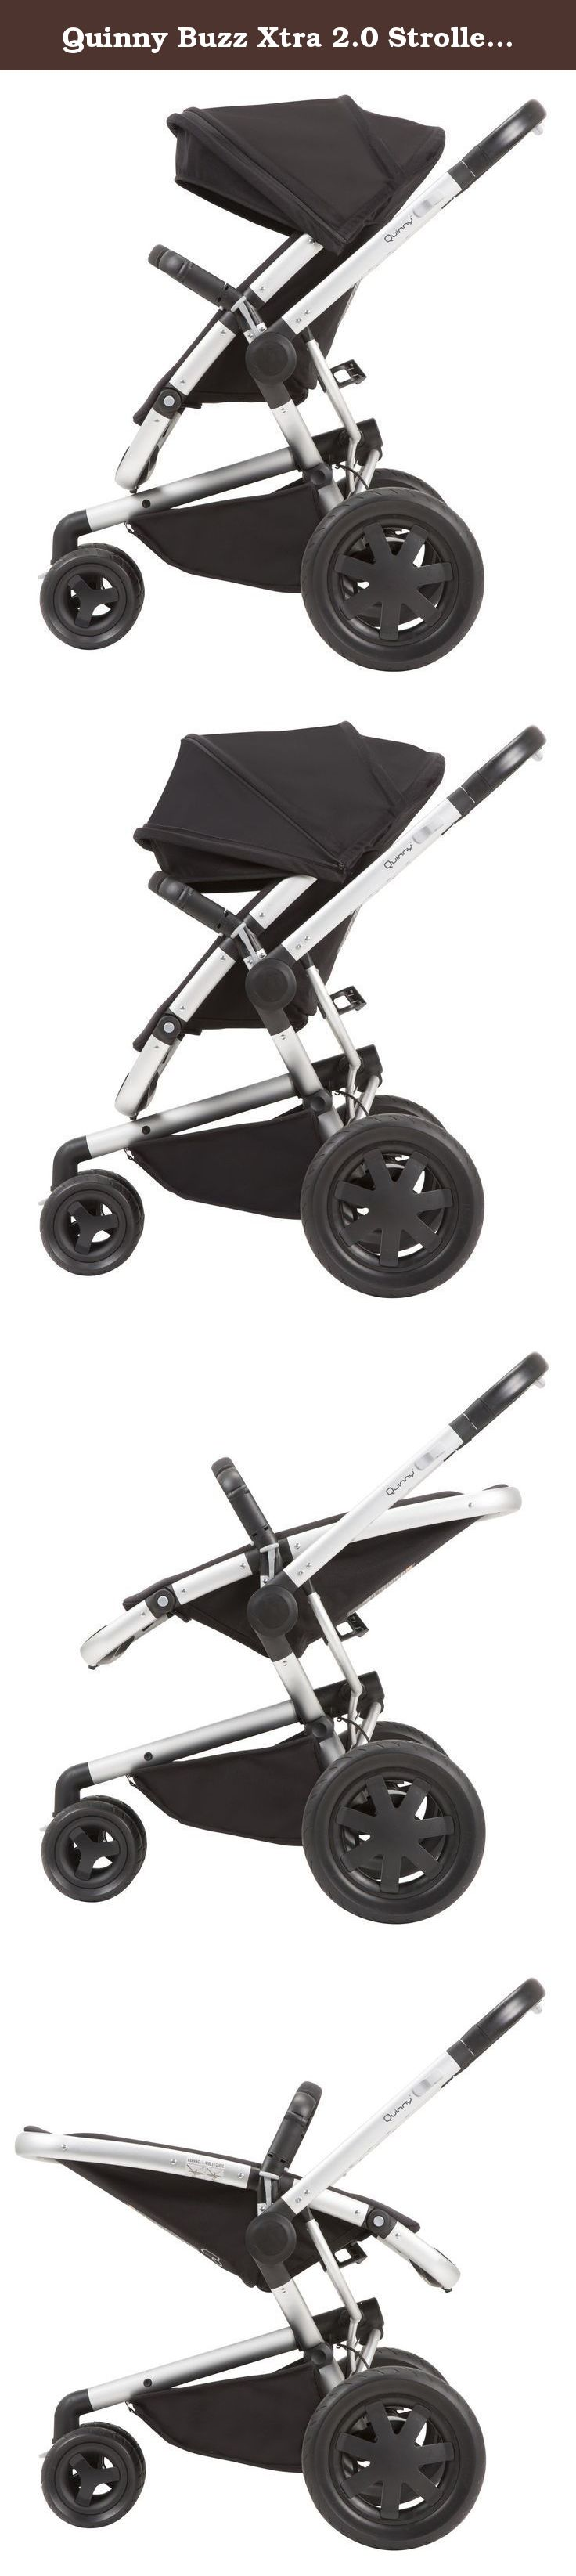 10+ Quinny buzz stroller how to fold information